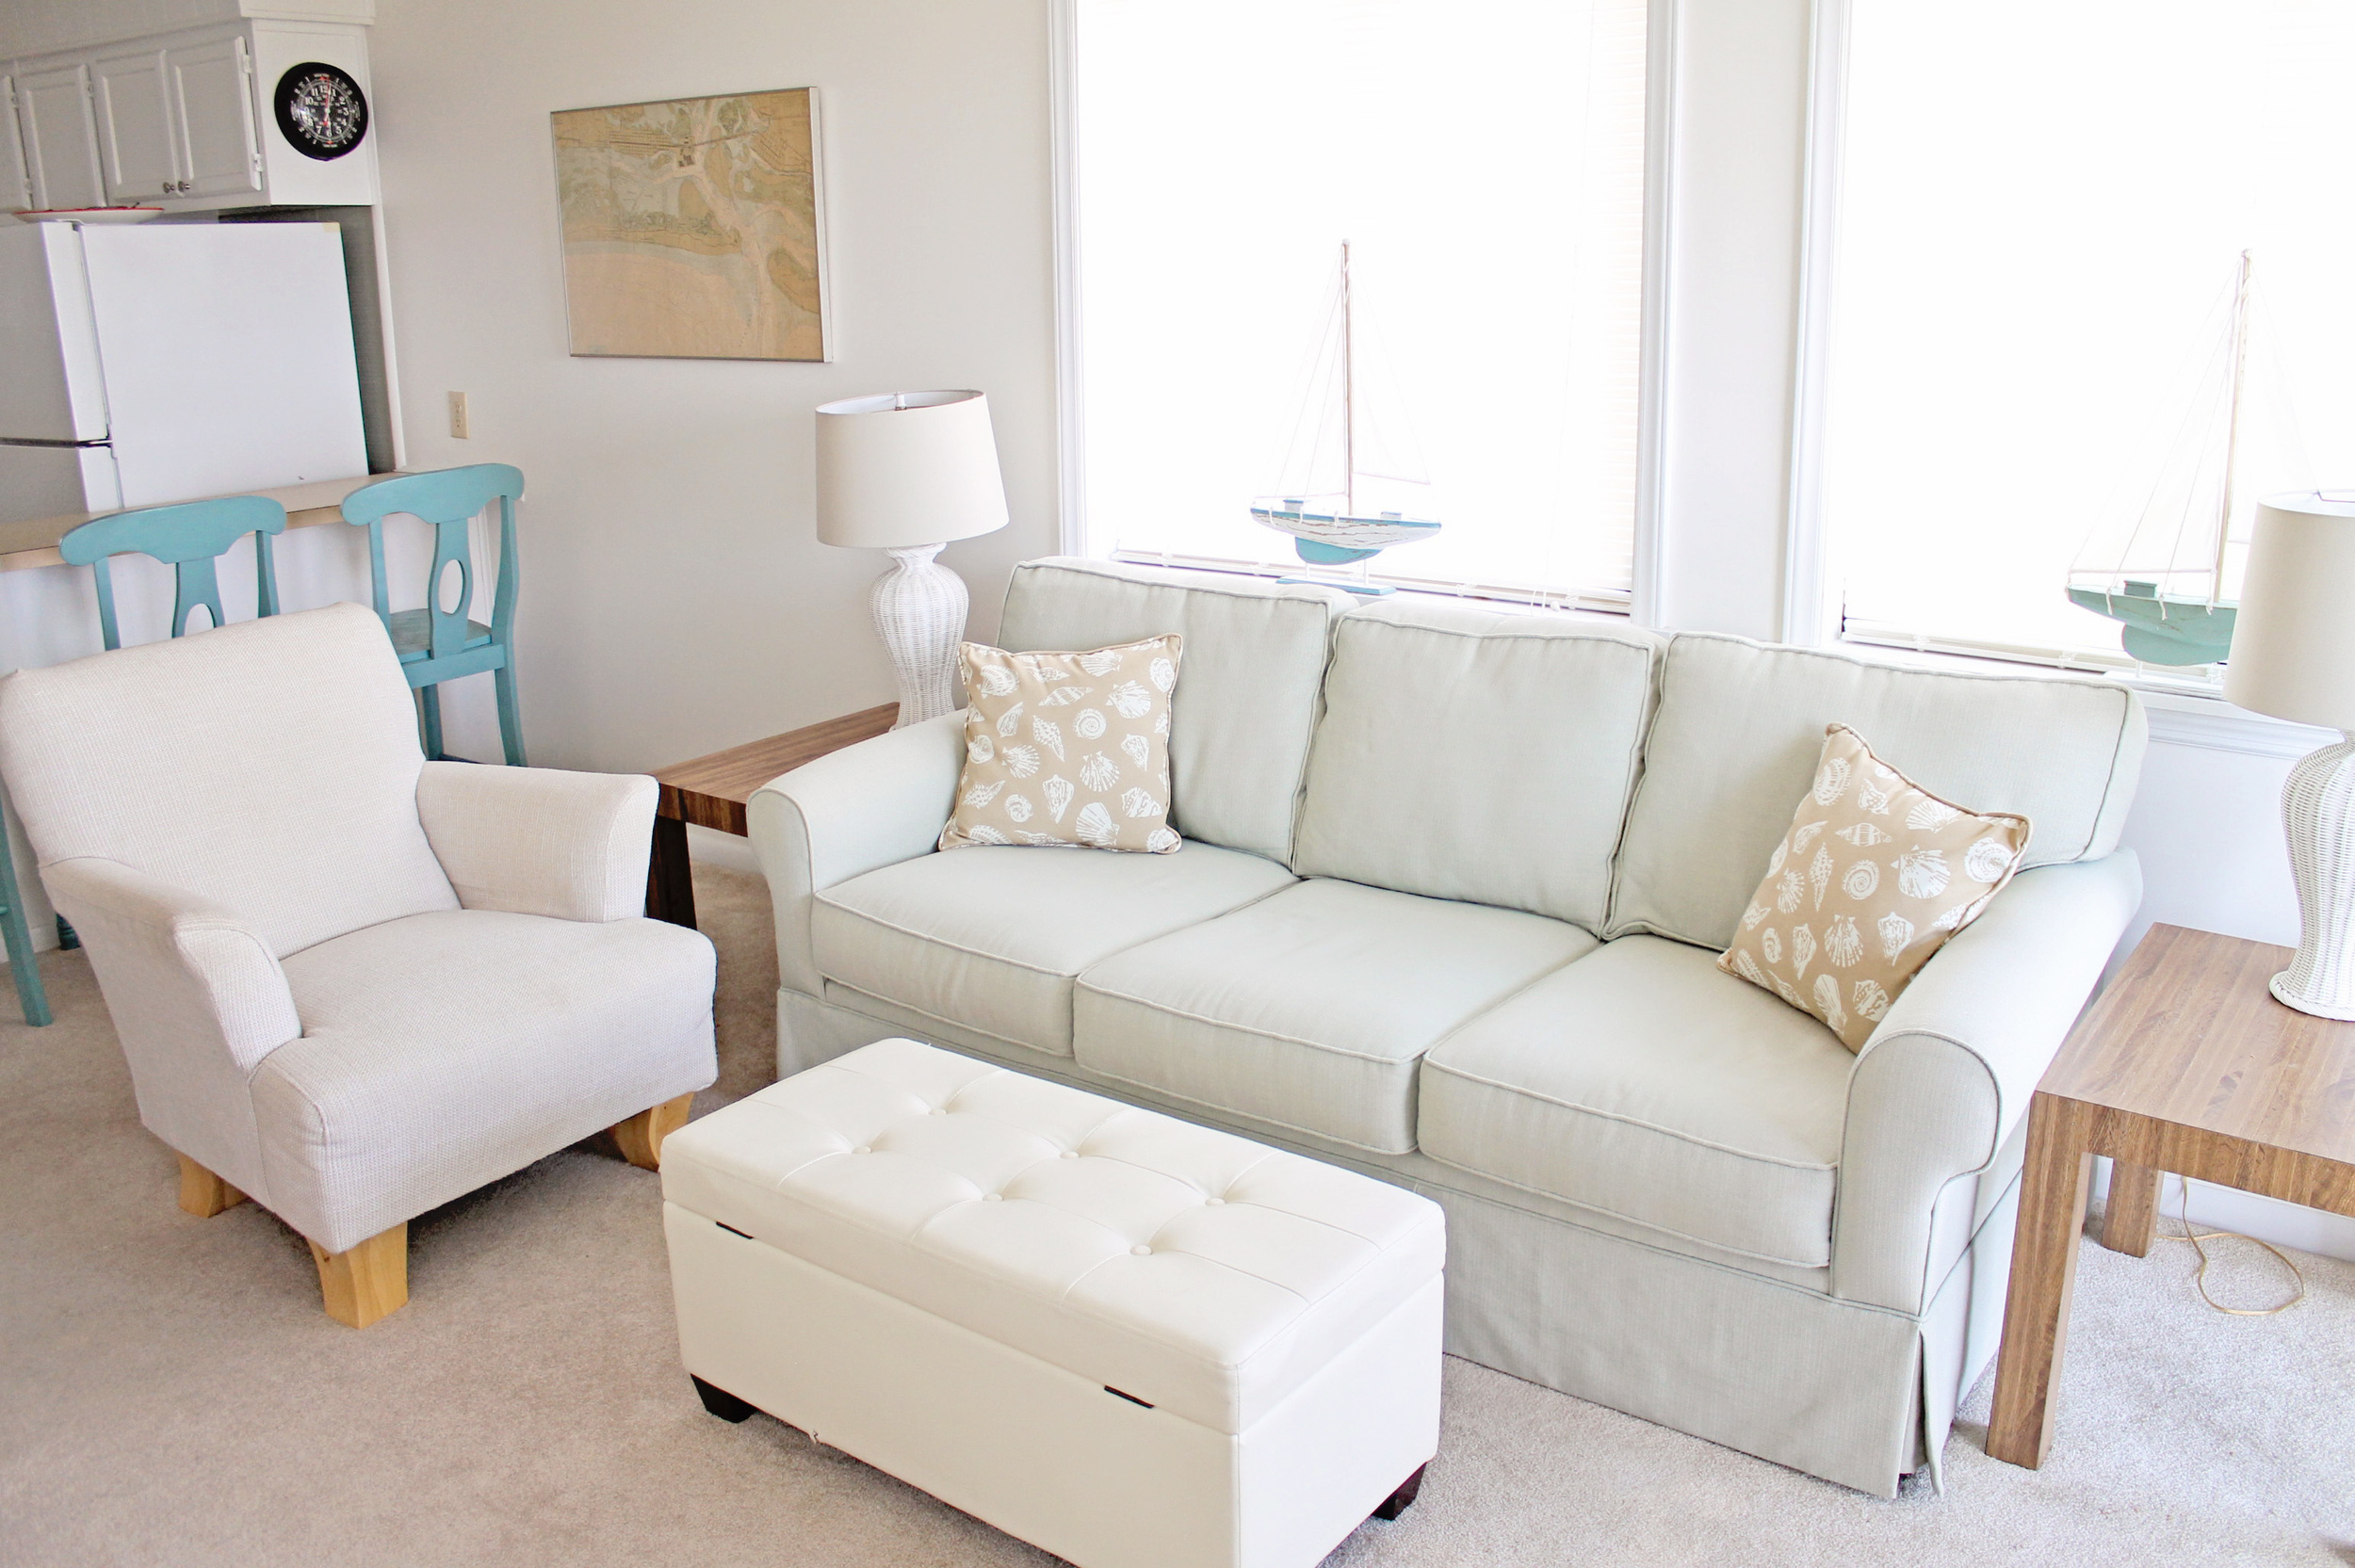 Elizabeth Burns Design | Beach Condo Before and After - beach decor ideas using sea foam green and aqua blue